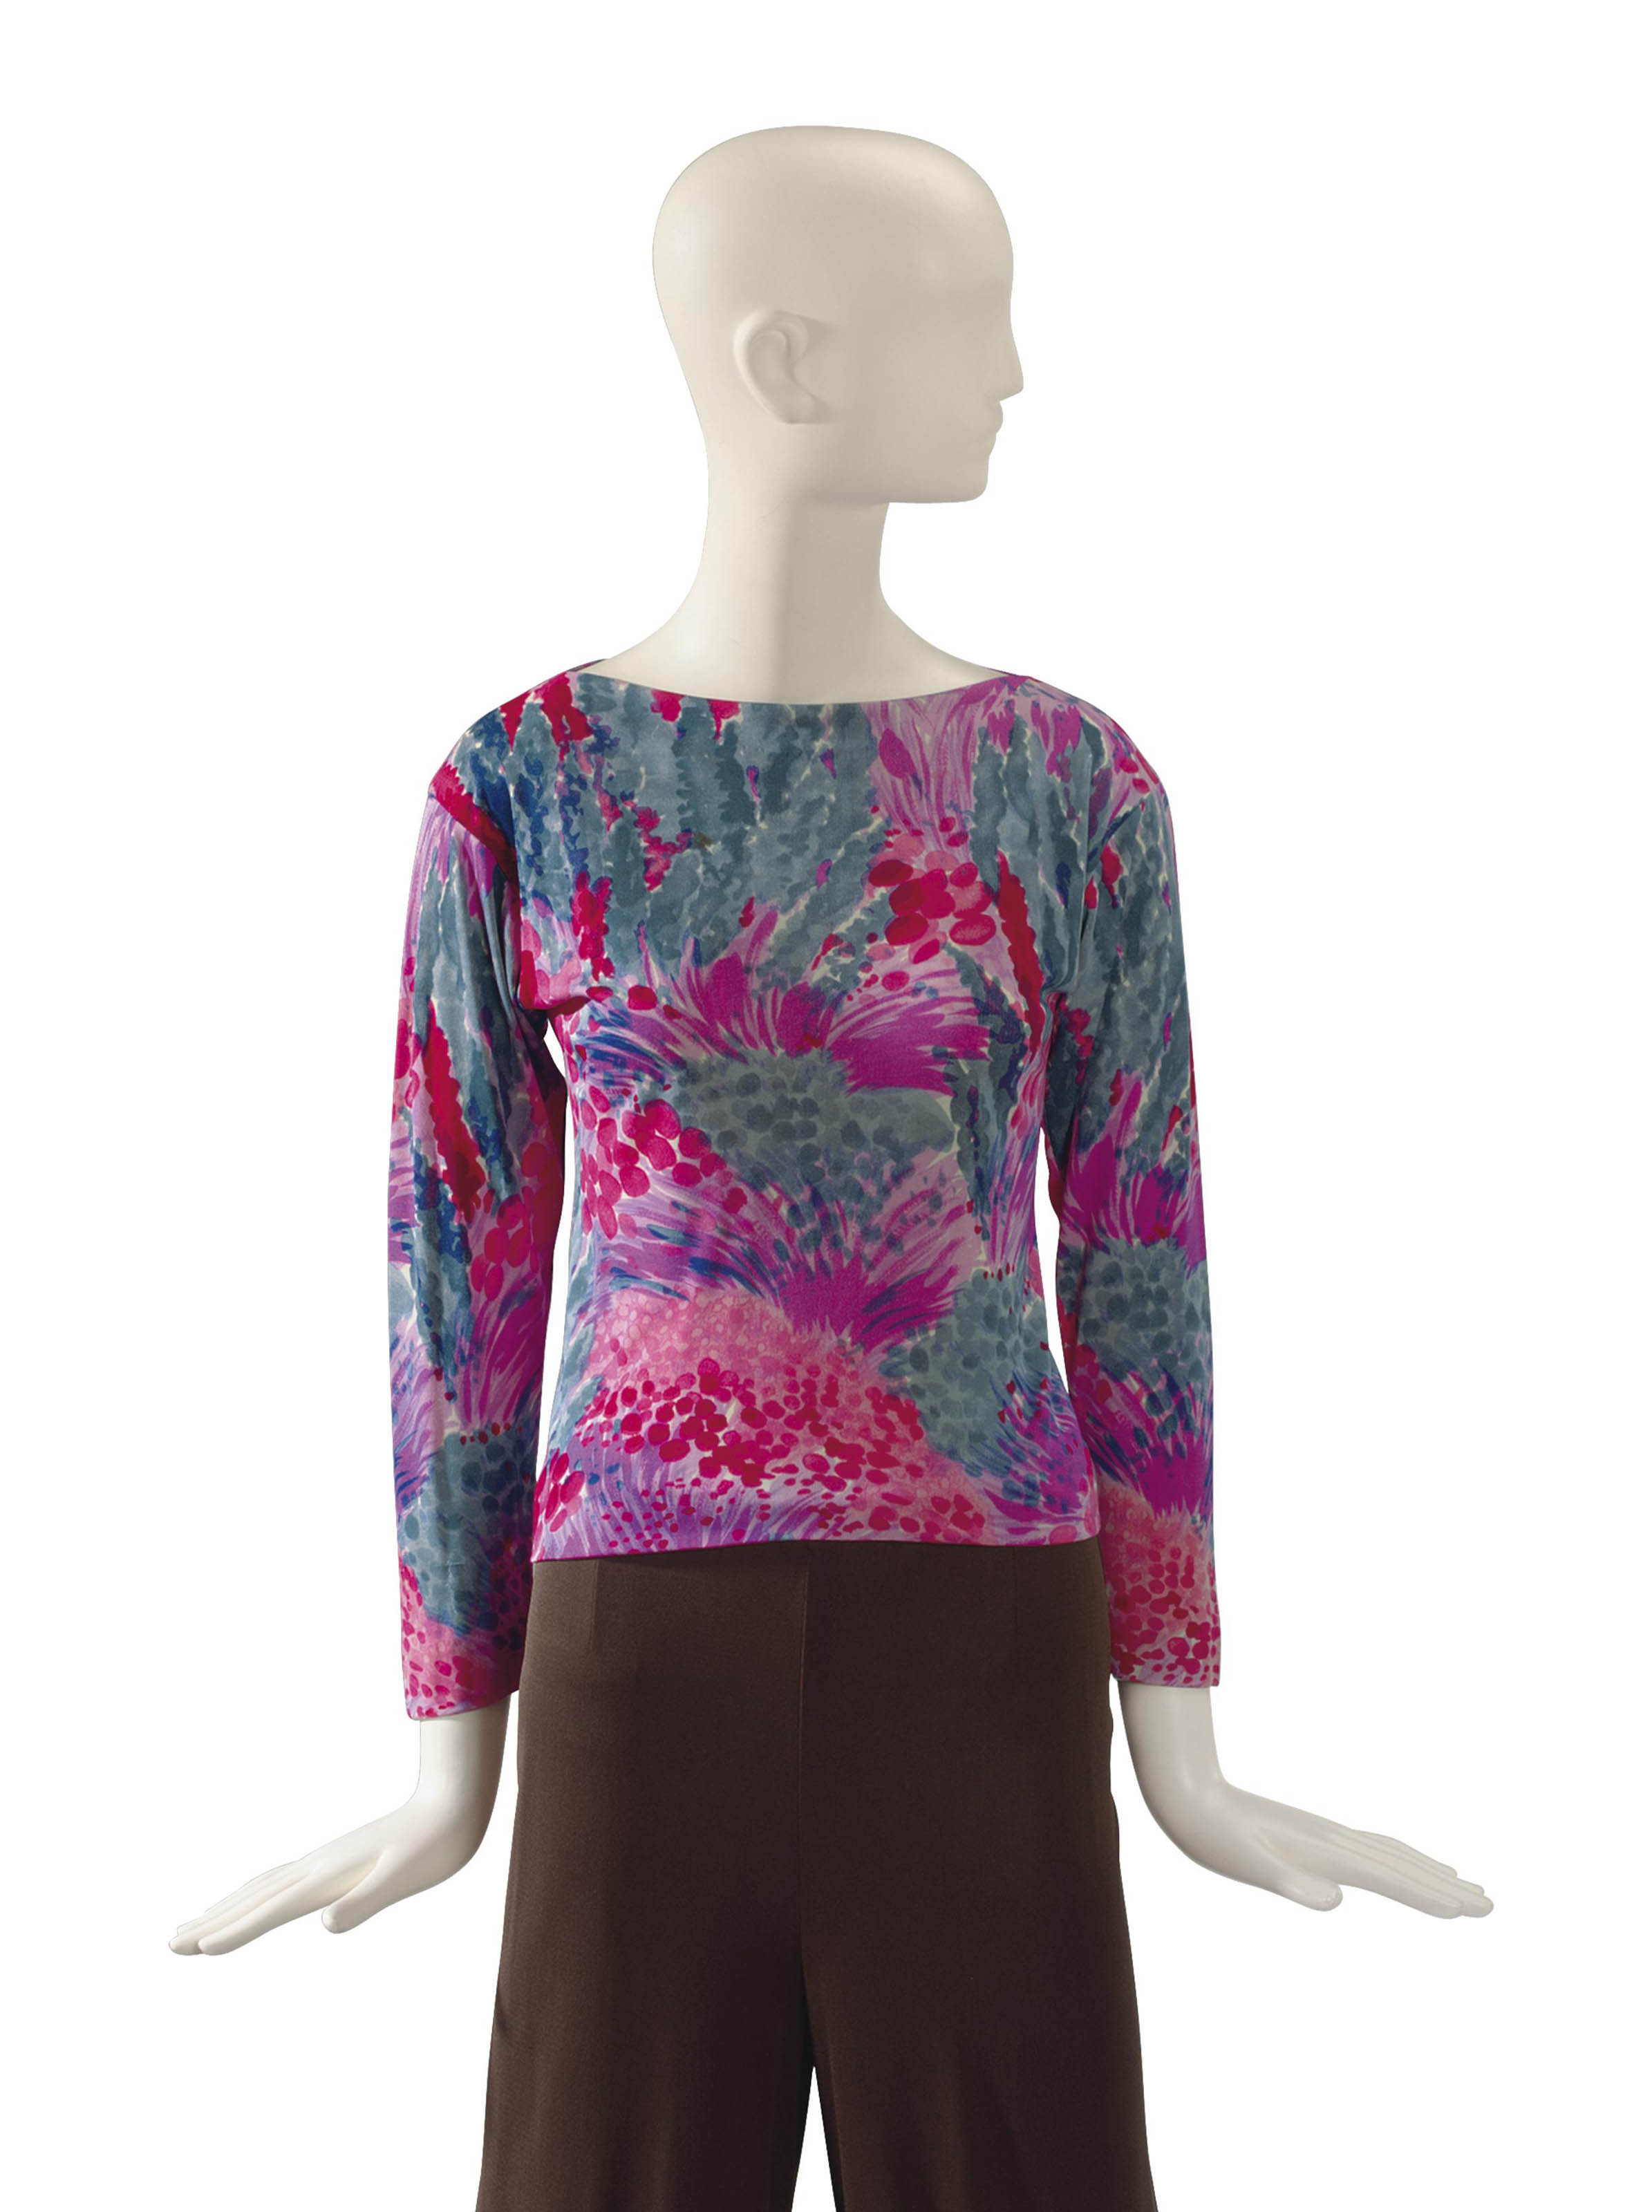 AN EMILIO PUCCI RED, PINK AND GREY FLORAL PRINT SILK JERSEY TOP